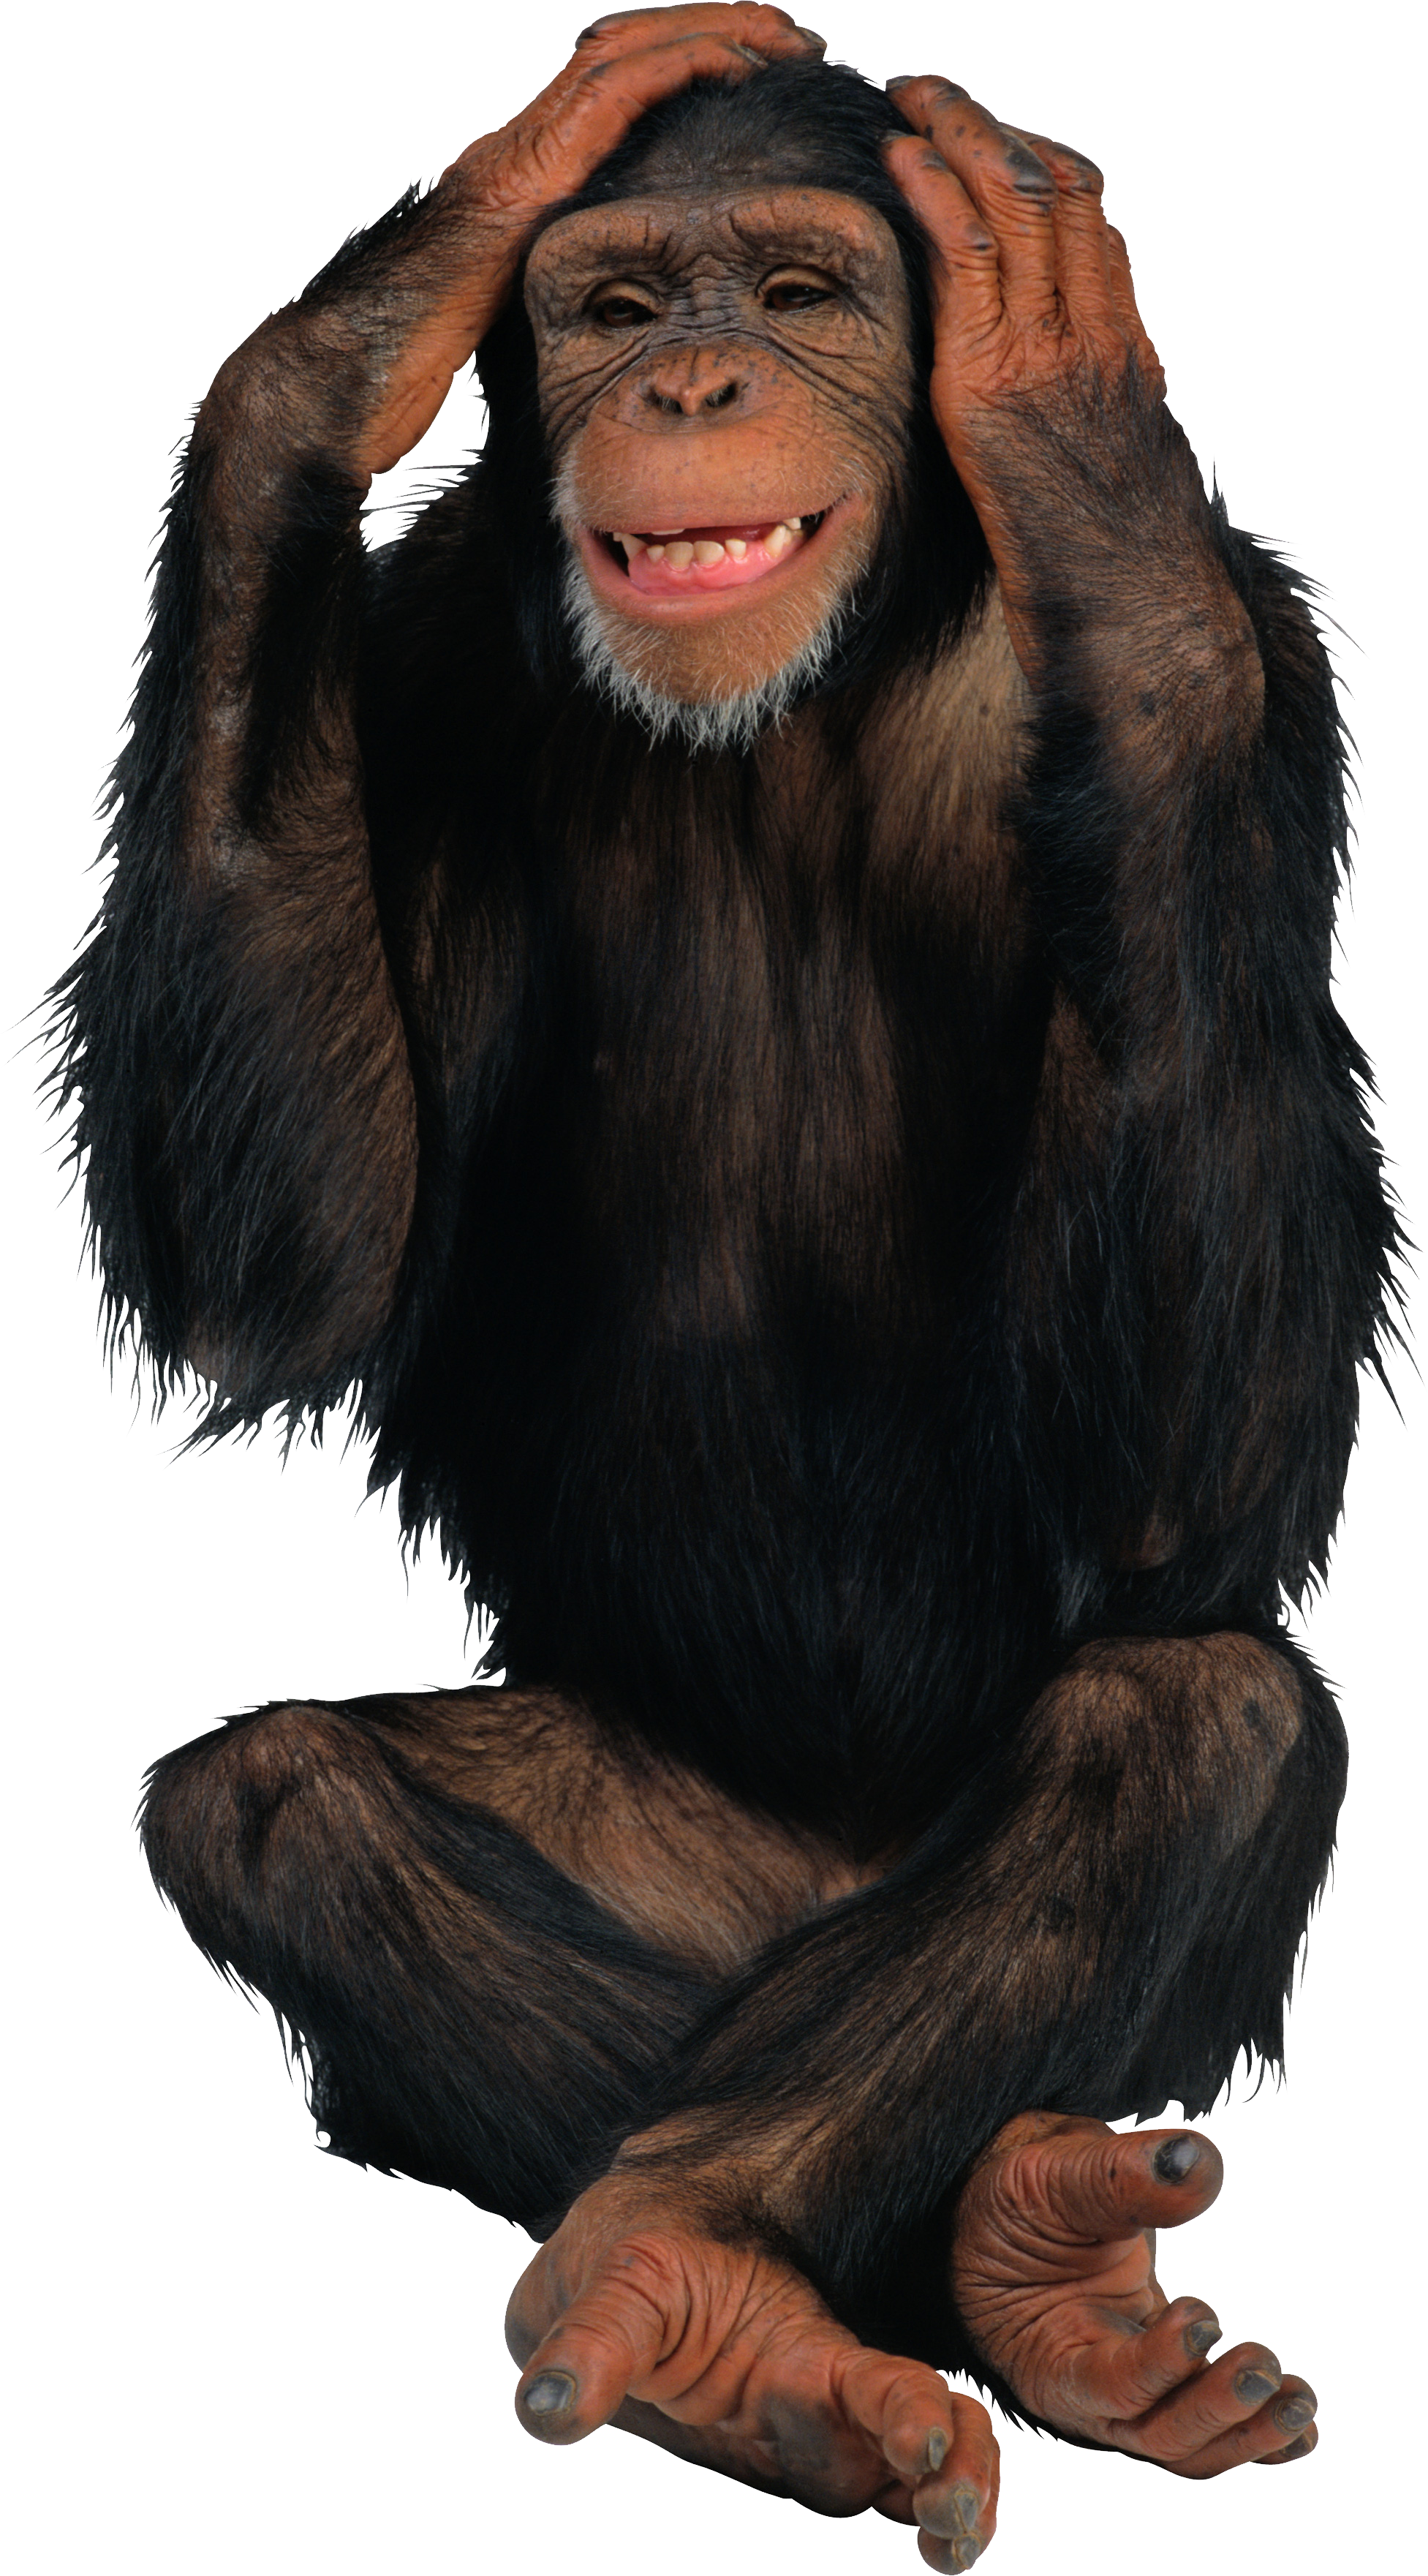 Images free download. Monkey png vector library library